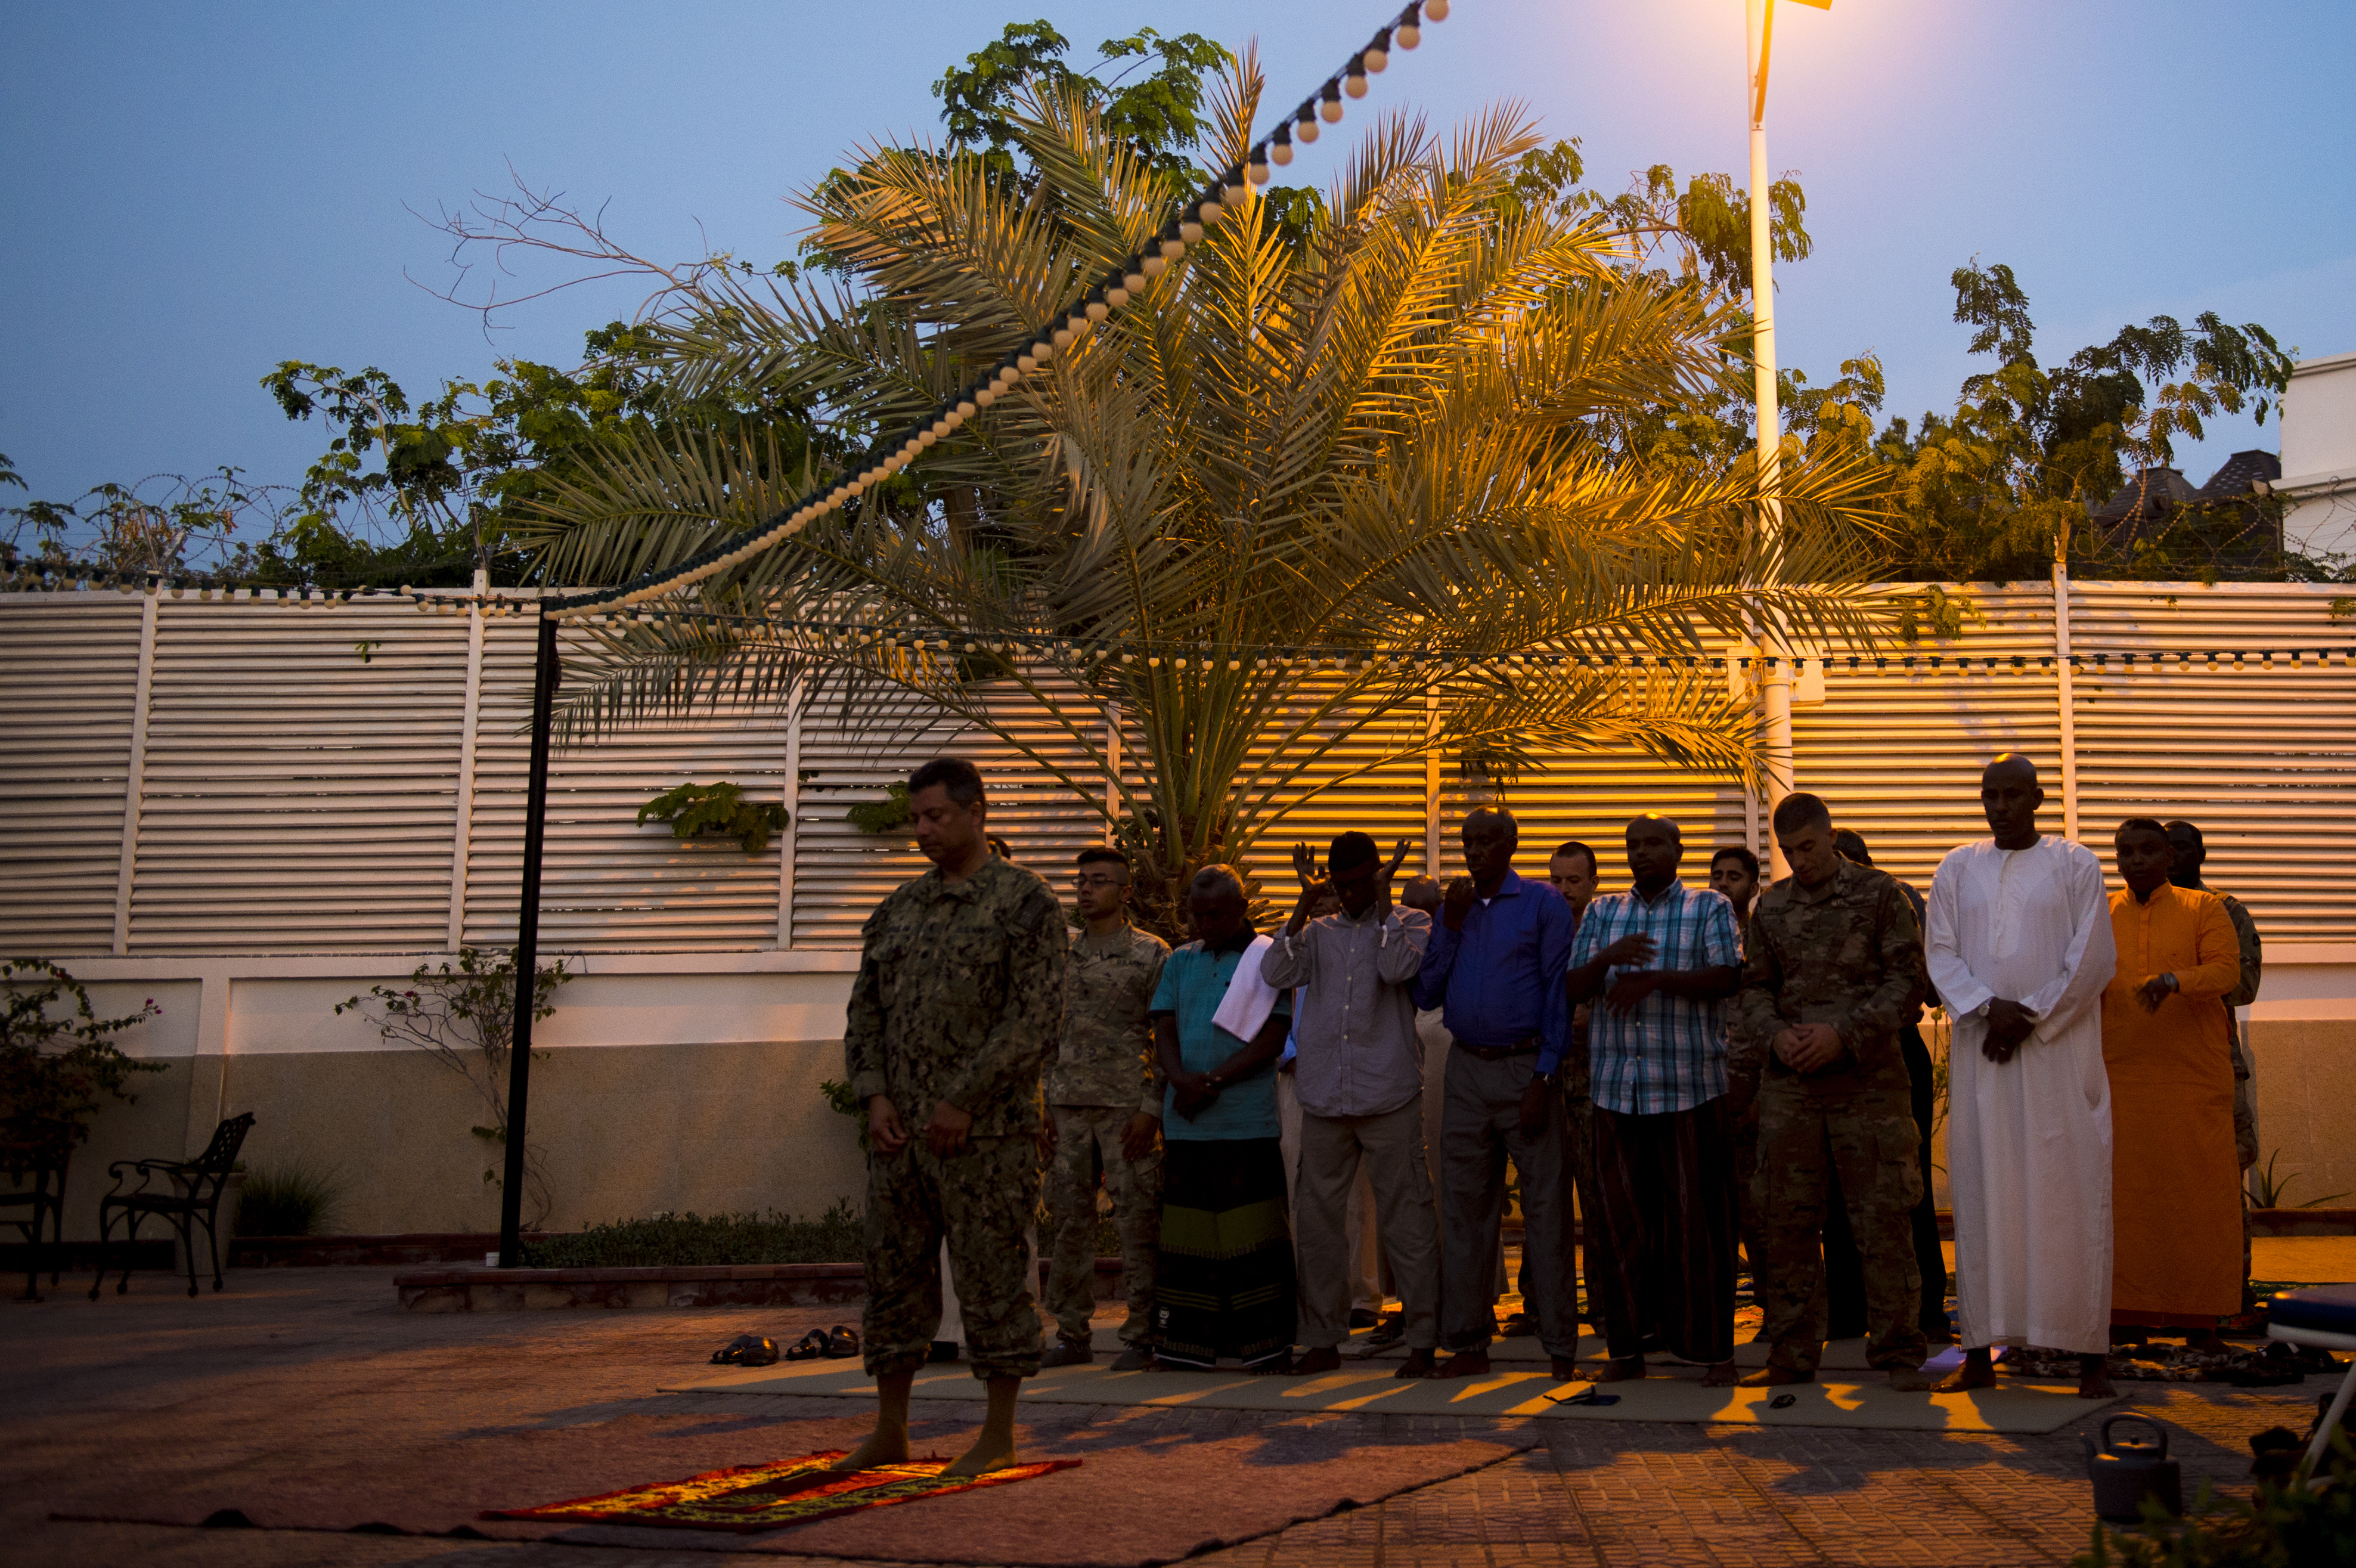 U.S. Navy Cmdr. Abduhena Saifulislam, the Deputy Command Chaplain at U.S. Africa Command, leads Muslims in prayer as the sun sets, to begin an Iftar at the residence of Larry André, the U.S. Ambassador to the Republic of Djibouti, May 21, 2018. André opened his home to celebrate two Iftars, one run by the Defense Attaché Office for senior Diboutian Military and security leaders, the second for senior government, diplomatic, and business leaders. (U.S. Air Force photo by Senior Airman Scott Jackson)